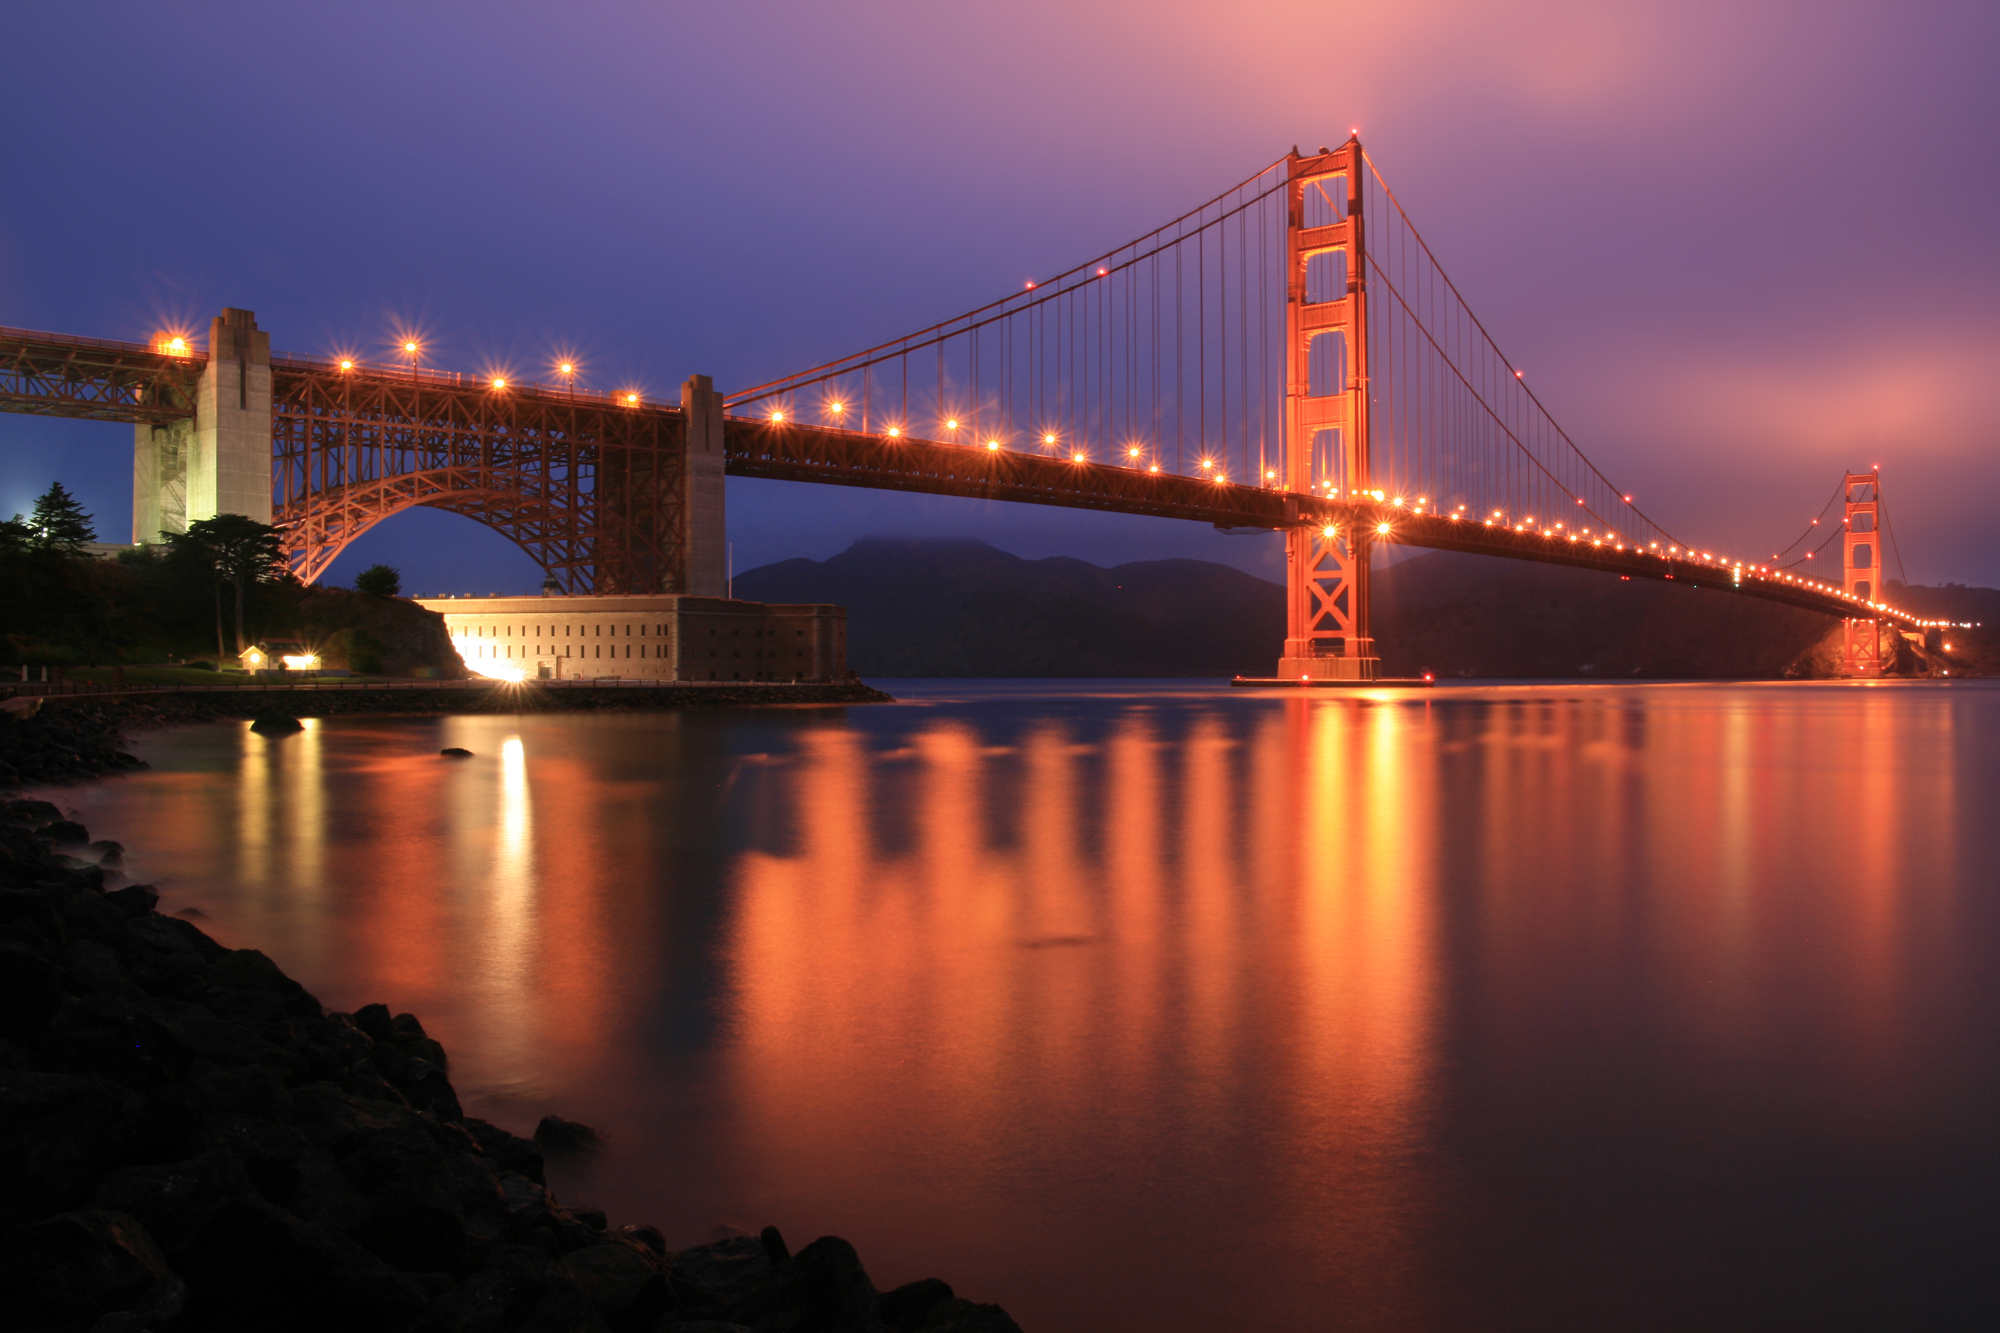 goldens bridge buddhist dating site Crossing under the iconic red towers of the 4,200-foot golden gate bridge,  experience  once a us army post and site of the world's fair, the presidio is    one of the museum's celebrated objects, the gilt bronze buddha dating to the  year.